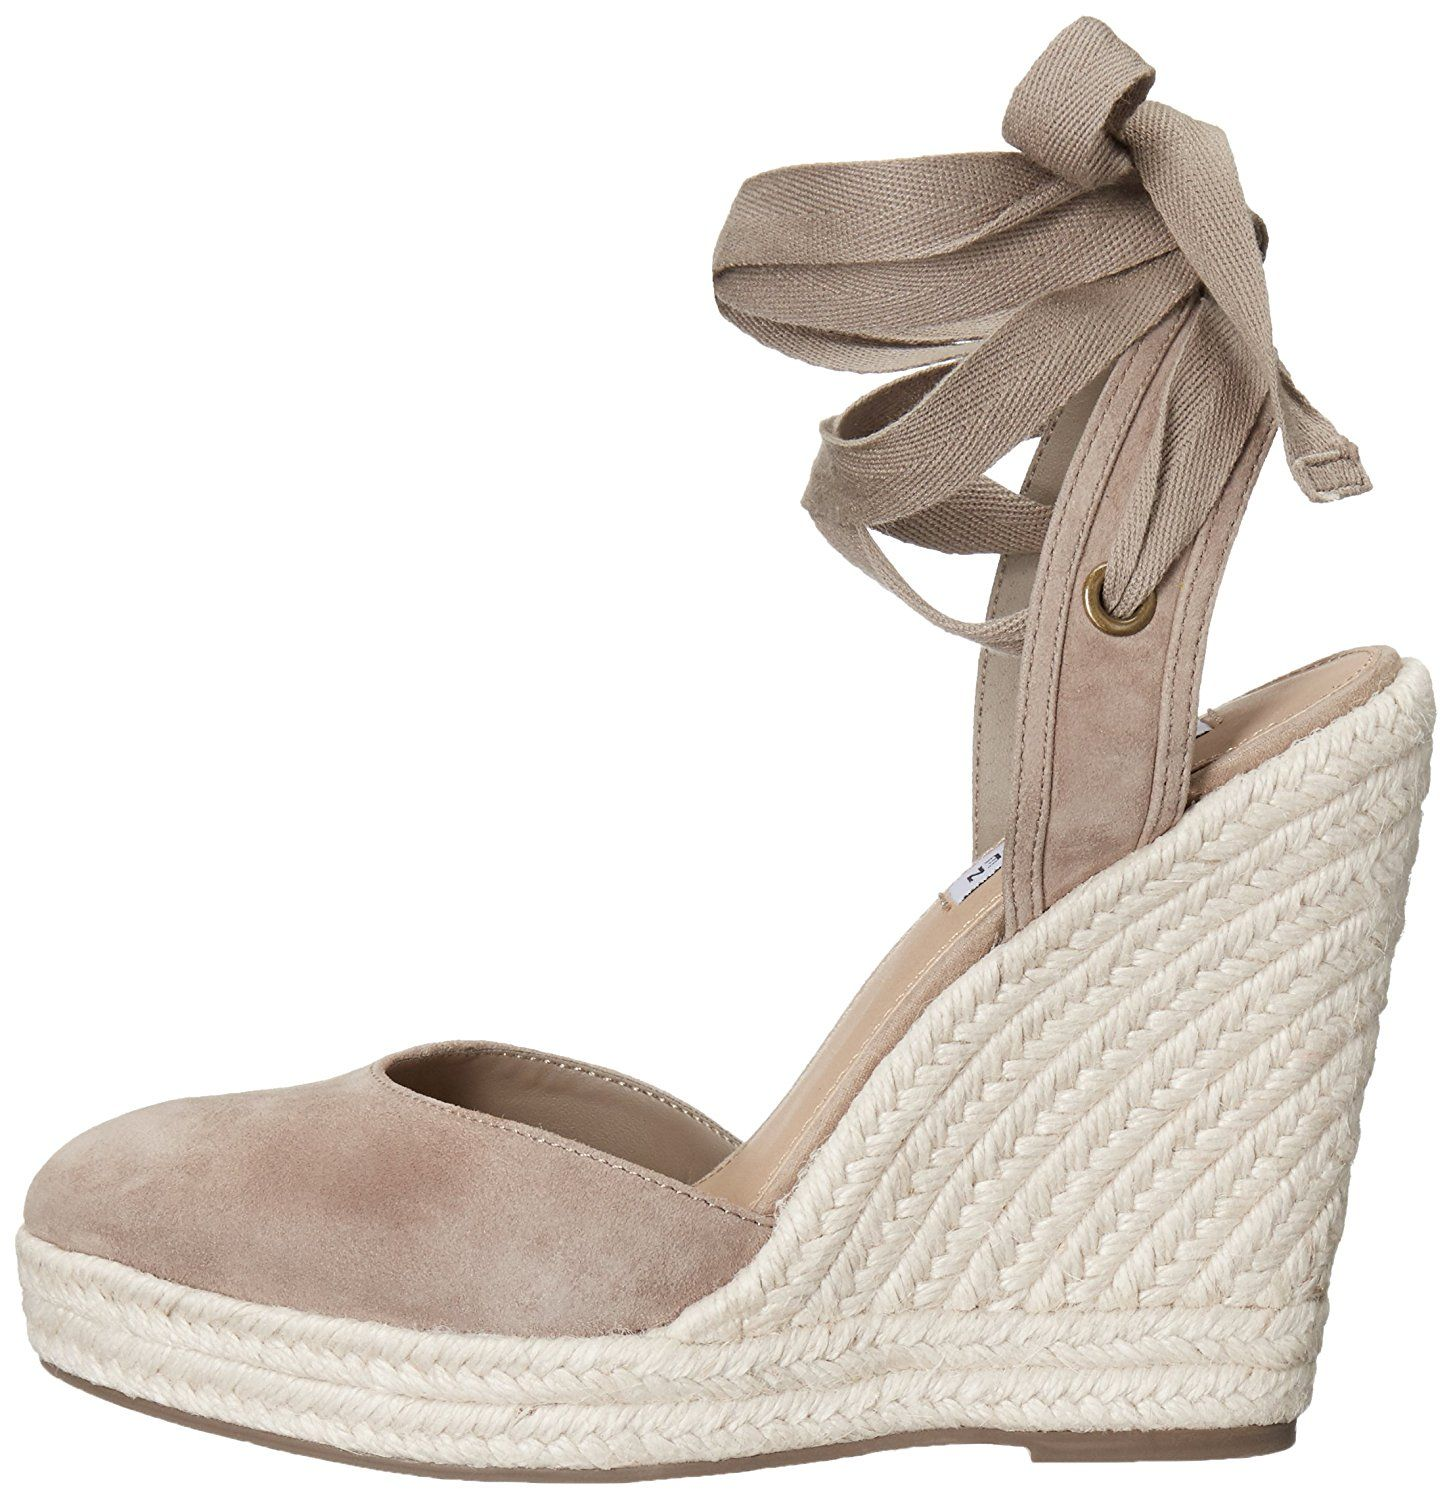 4e9ec5f3e82 Steve Madden Women s Barre Espadrille Wedge Sandal    Click image for more  details. (This is an affiliate link)  shoelover